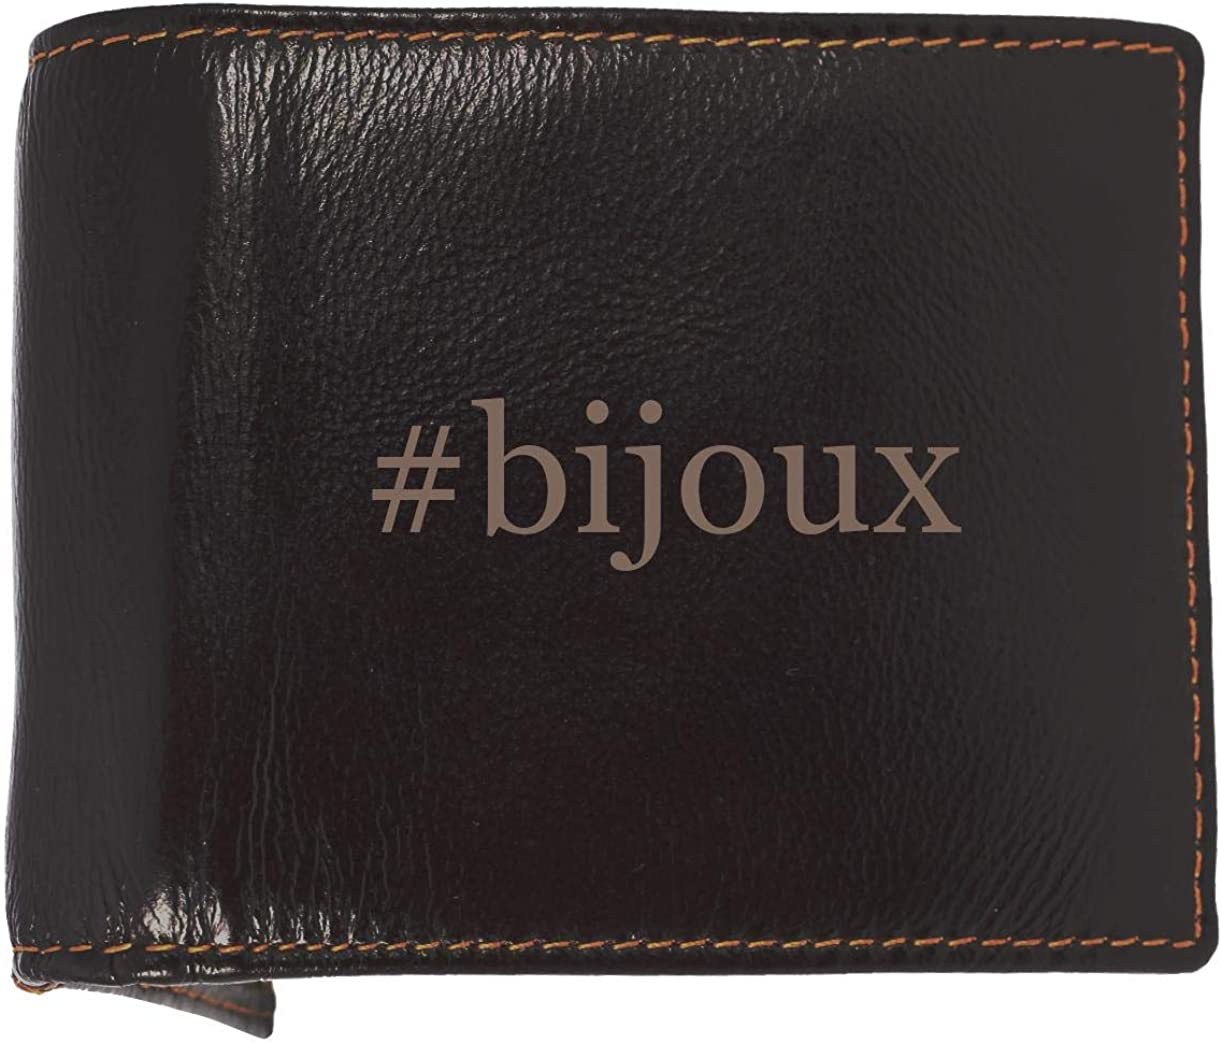 #bijoux - Soft Hashtag Cowhide Genuine Engraved Bifold Leather Wallet 61eYG2BT2B2zL